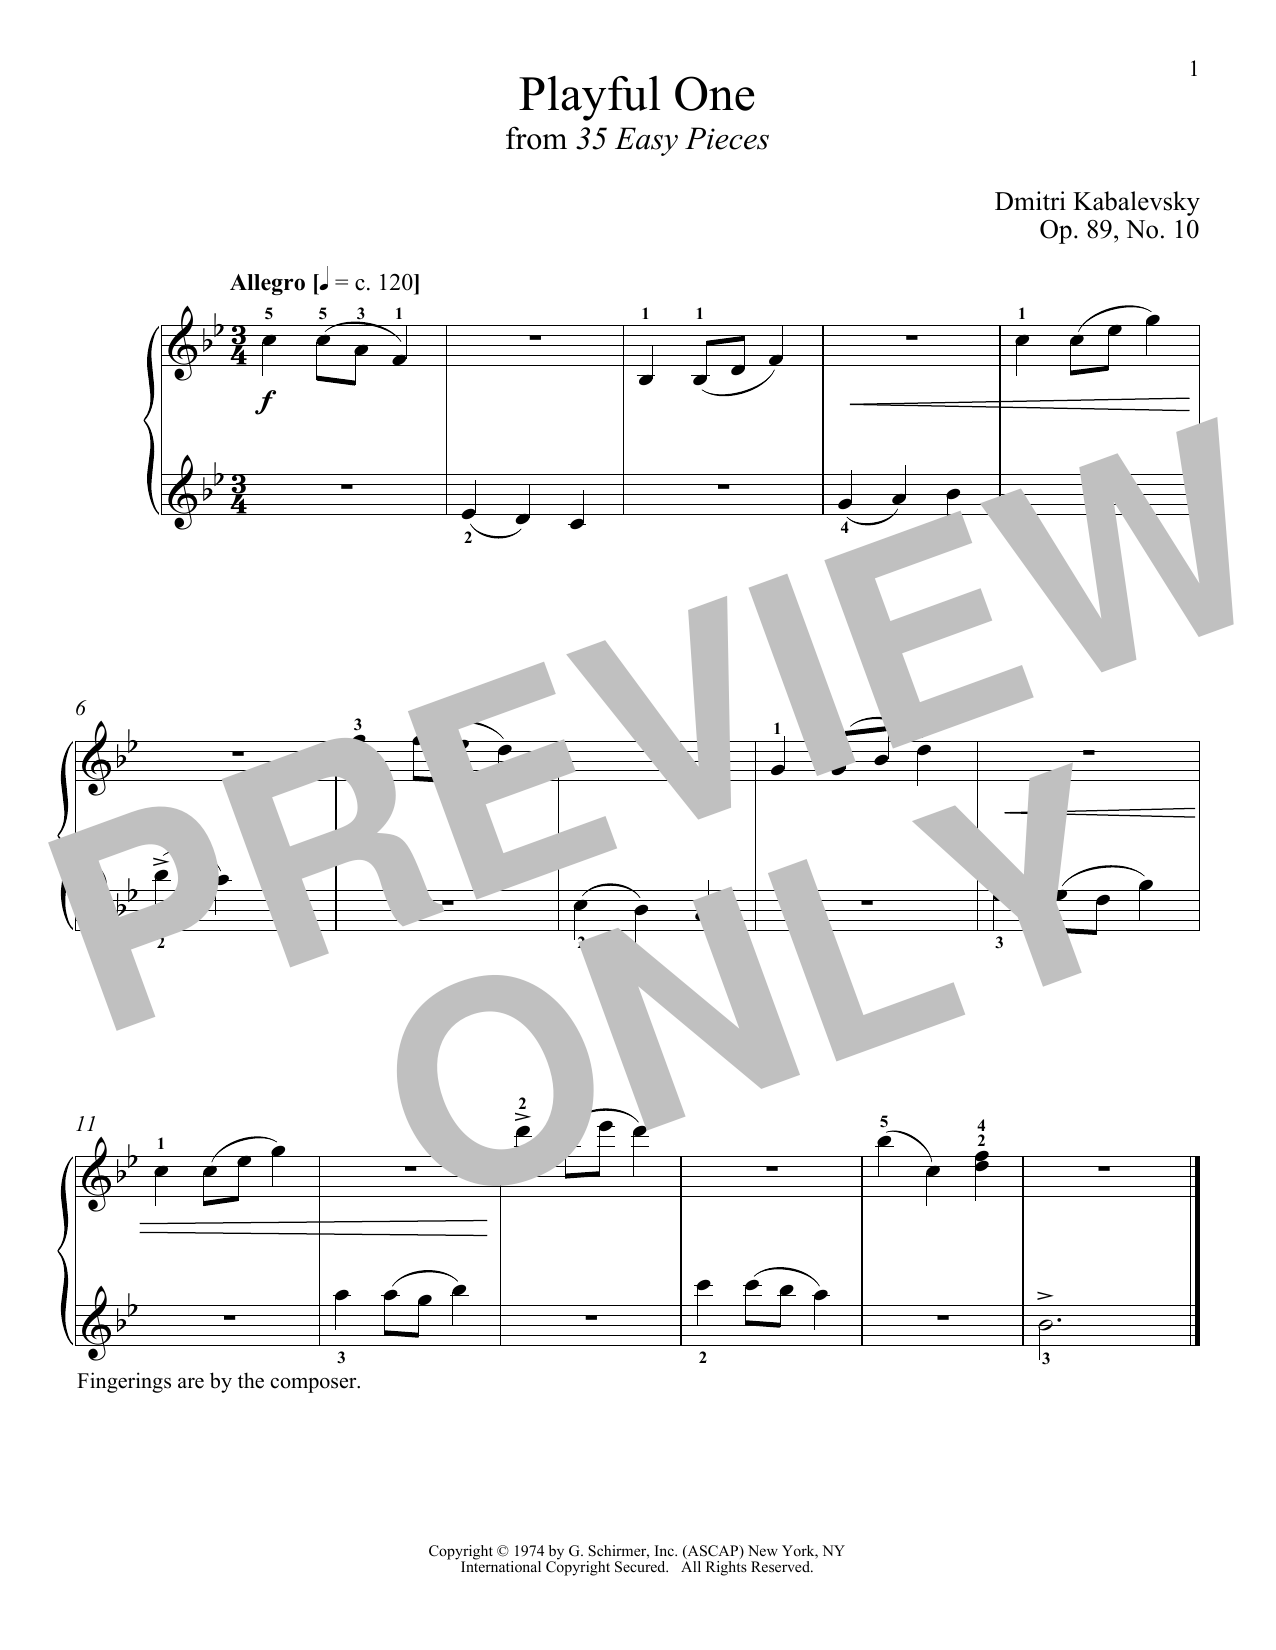 Download Dmitri Kabalevsky 'Playful One, Op. 89, No. 10' Digital Sheet Music Notes & Chords and start playing in minutes